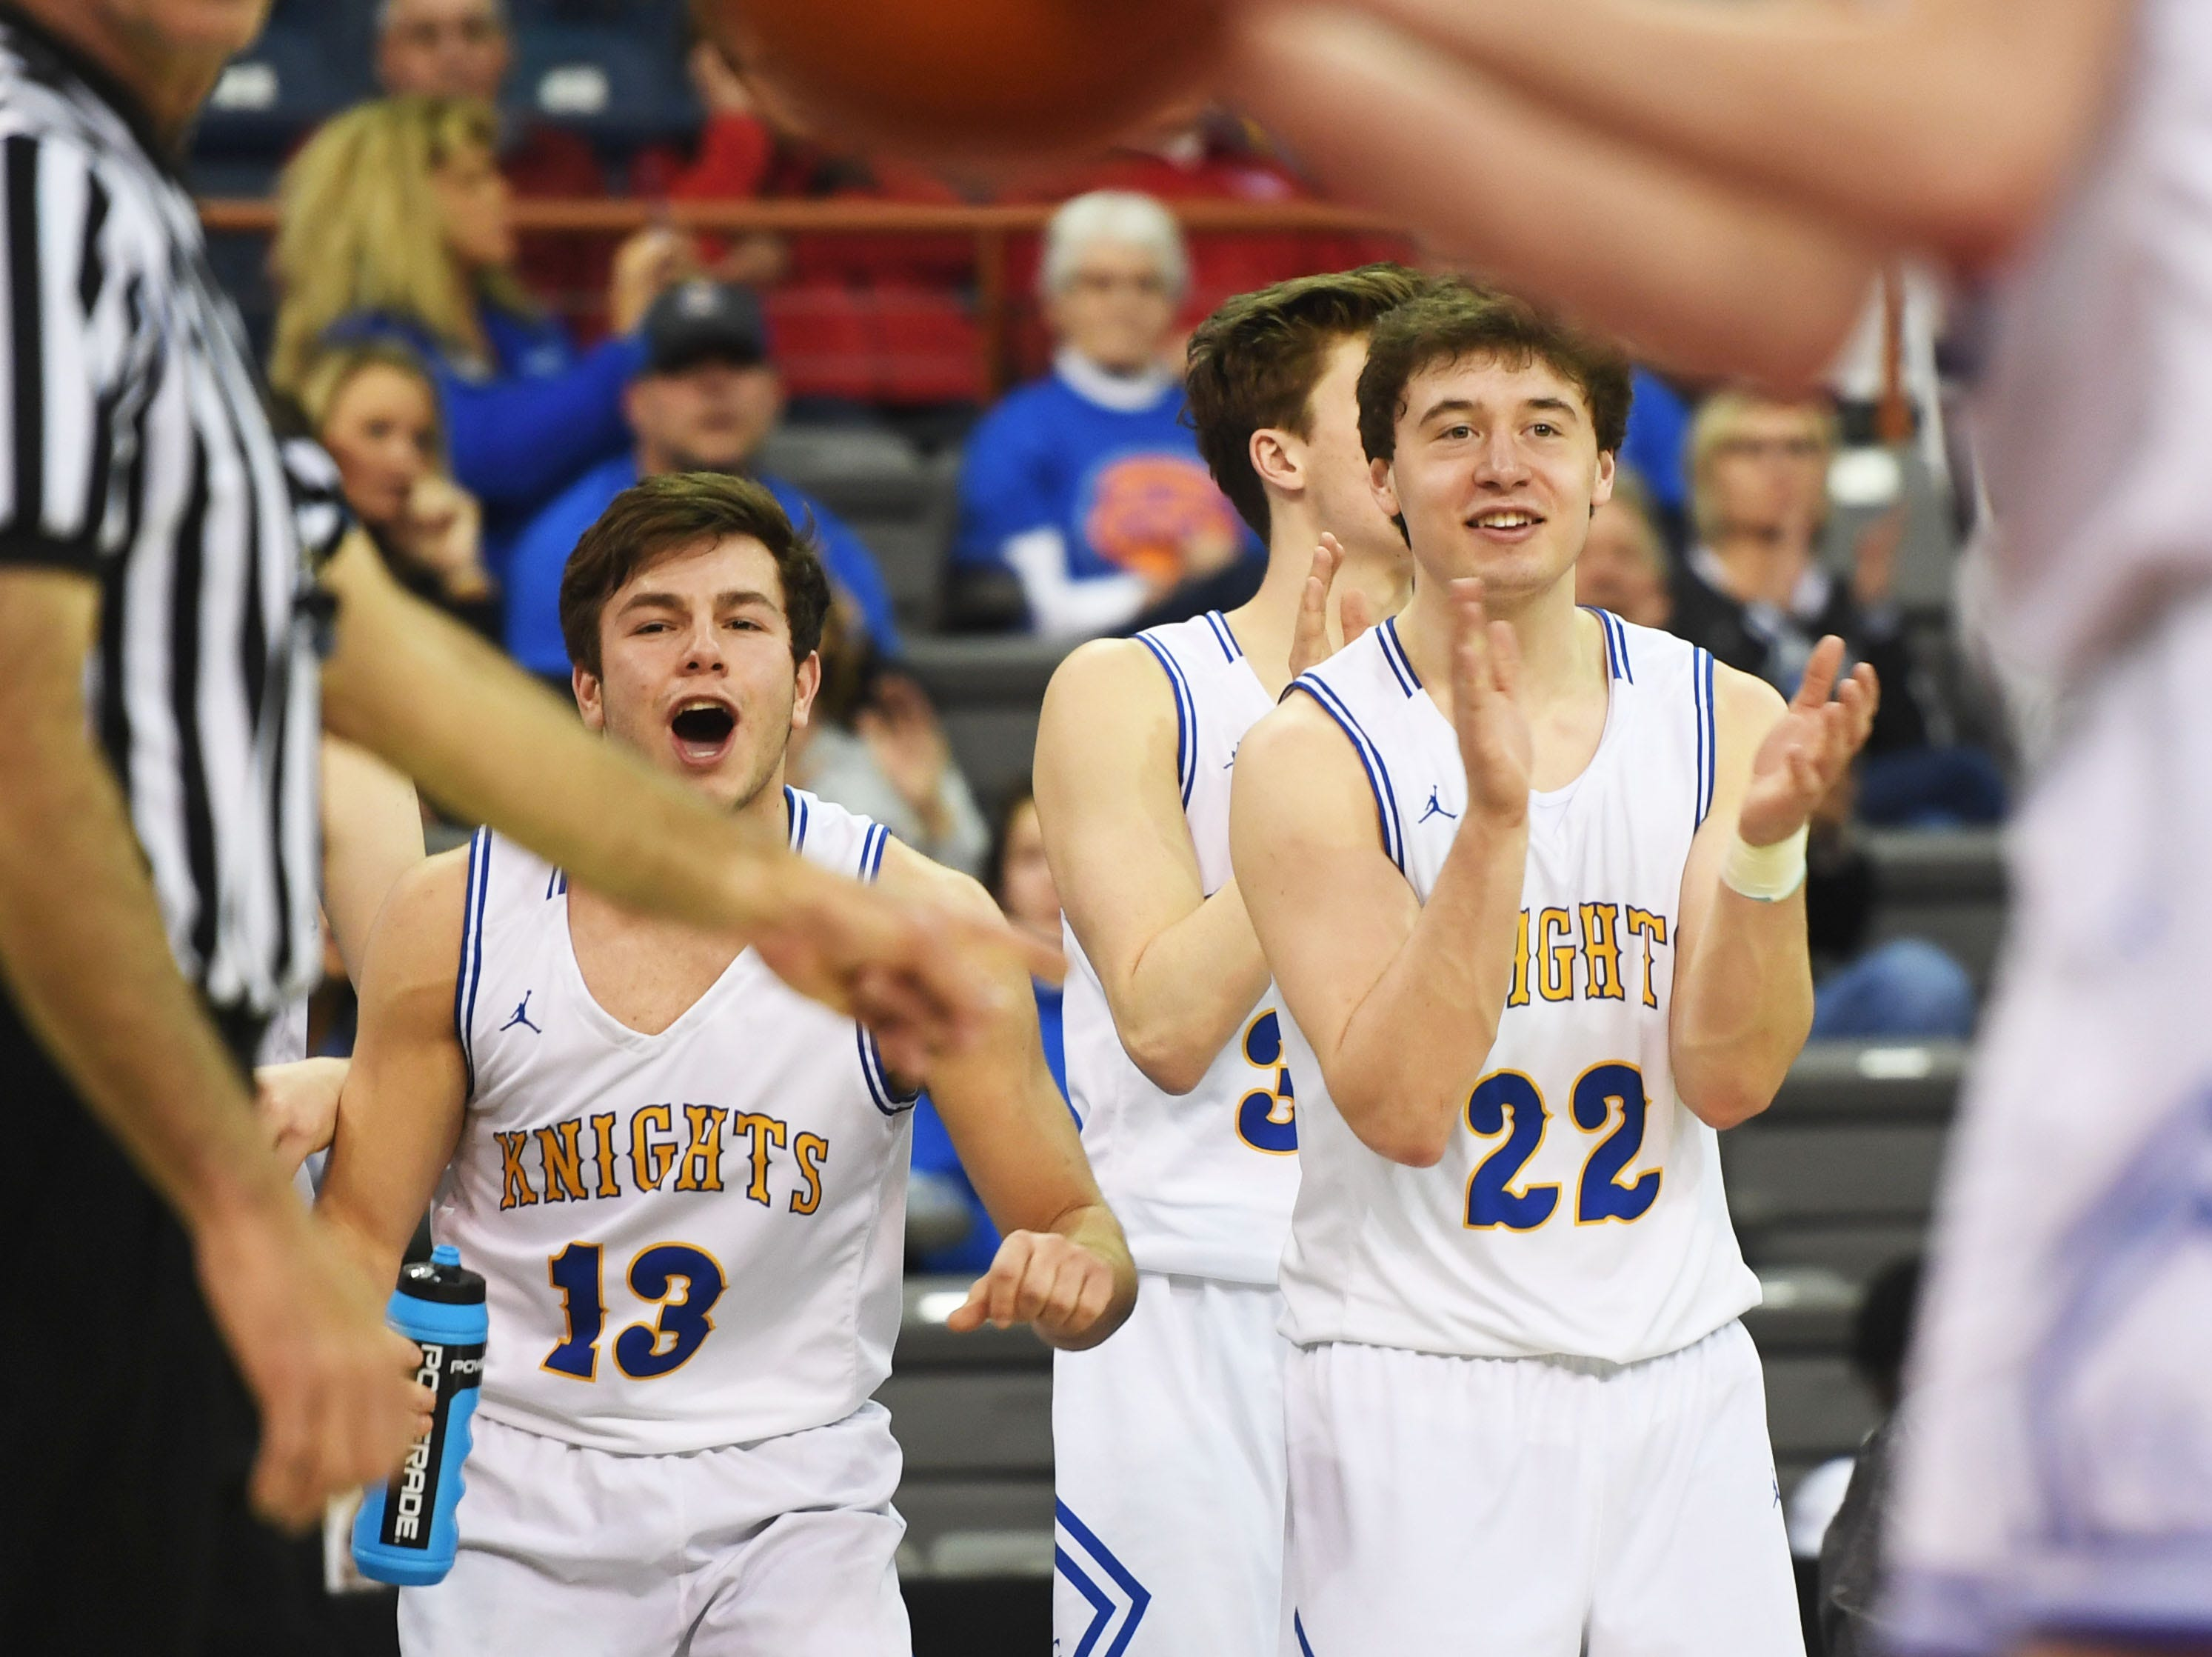 O'Gorman begins to celebrate their win against Roosevelt in the Class AA quarterfinals Thursday, March 14, in Rapid City.